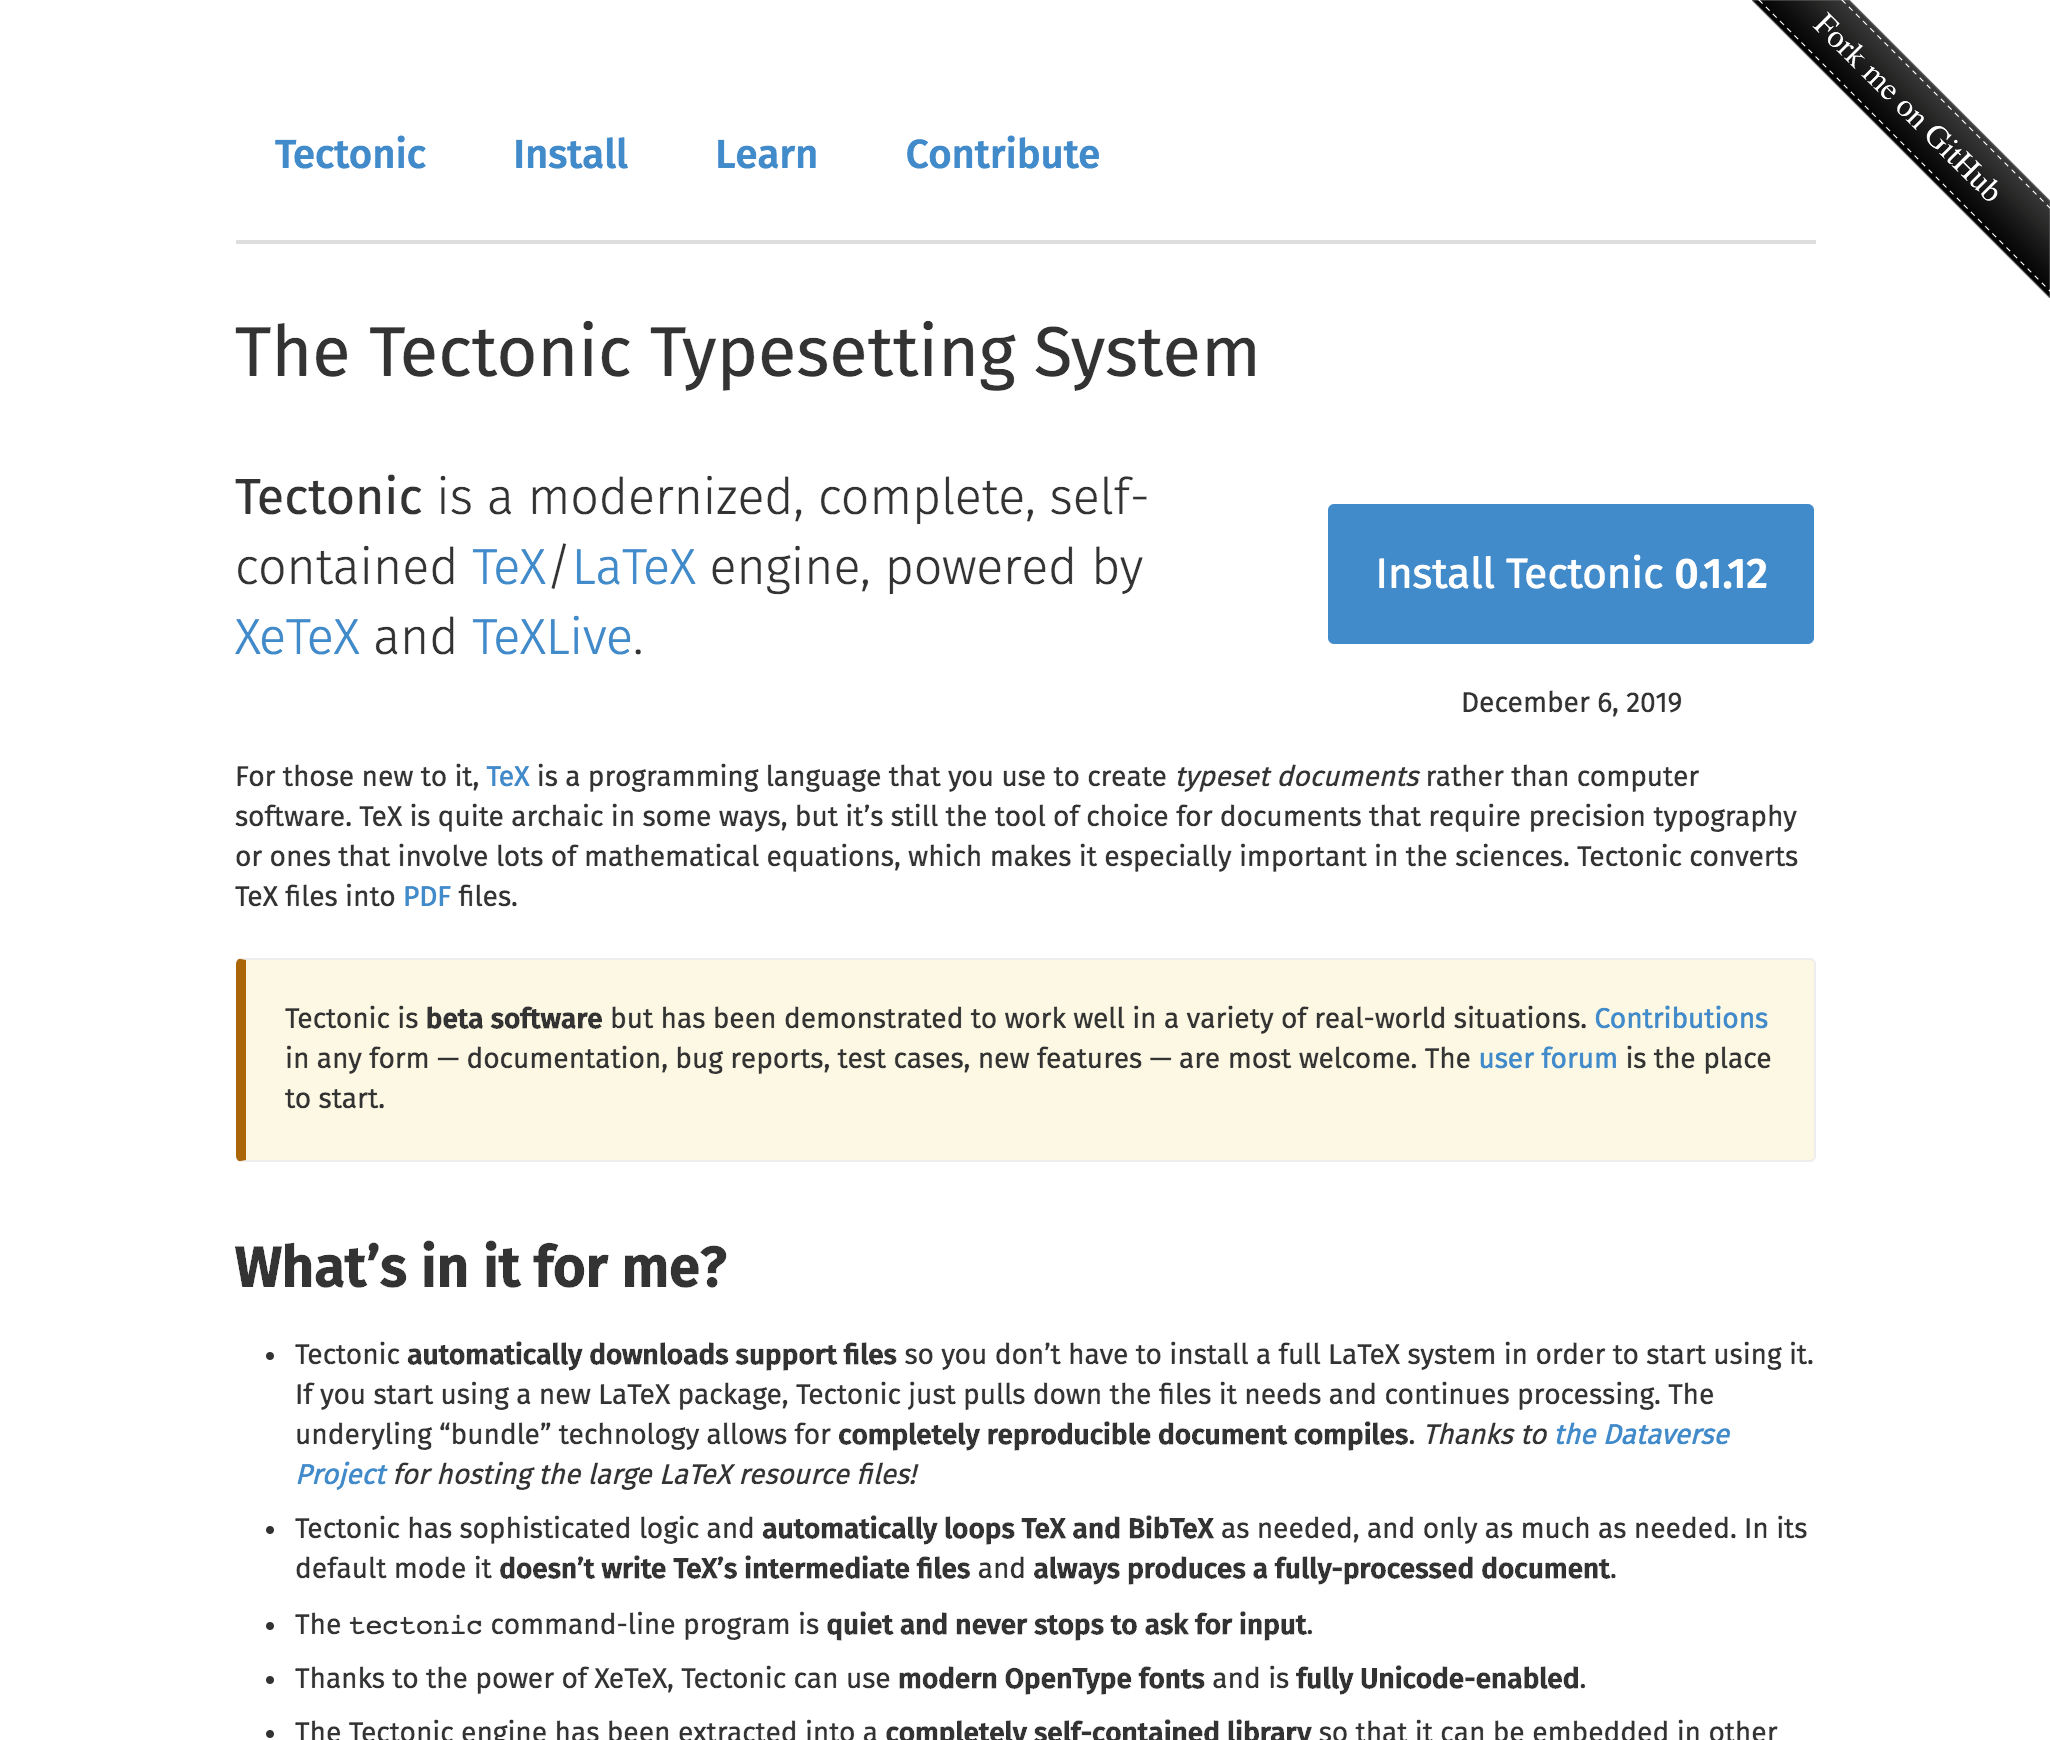 Tectonic Typesetting System